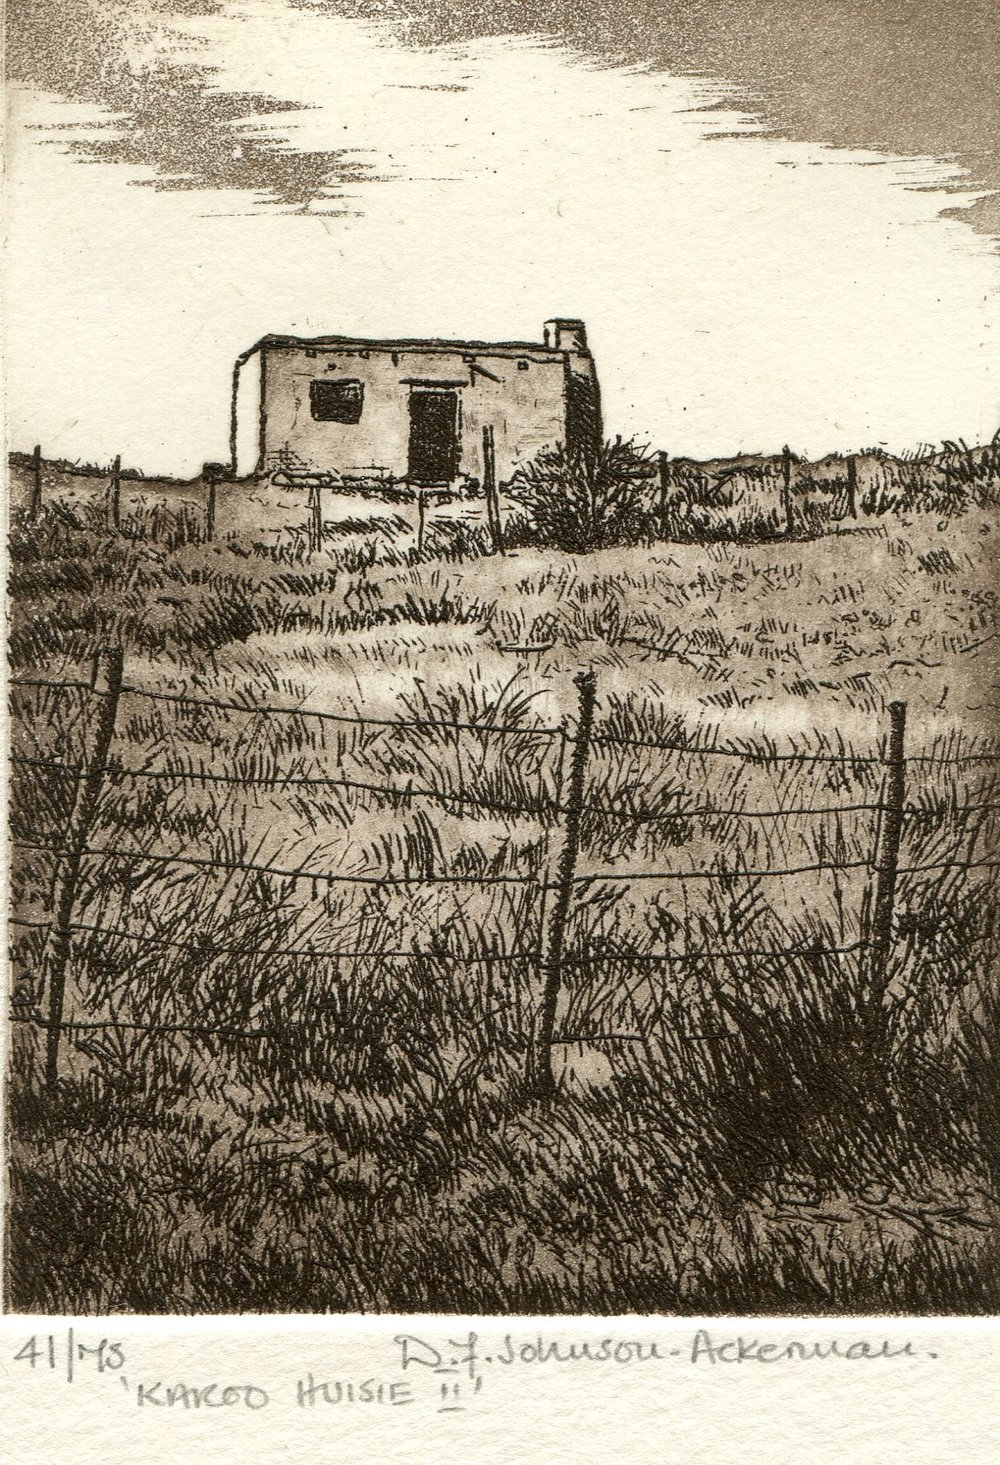 43a  Diane Johnson-Ackerman  Karoo huisie II  etching on paper